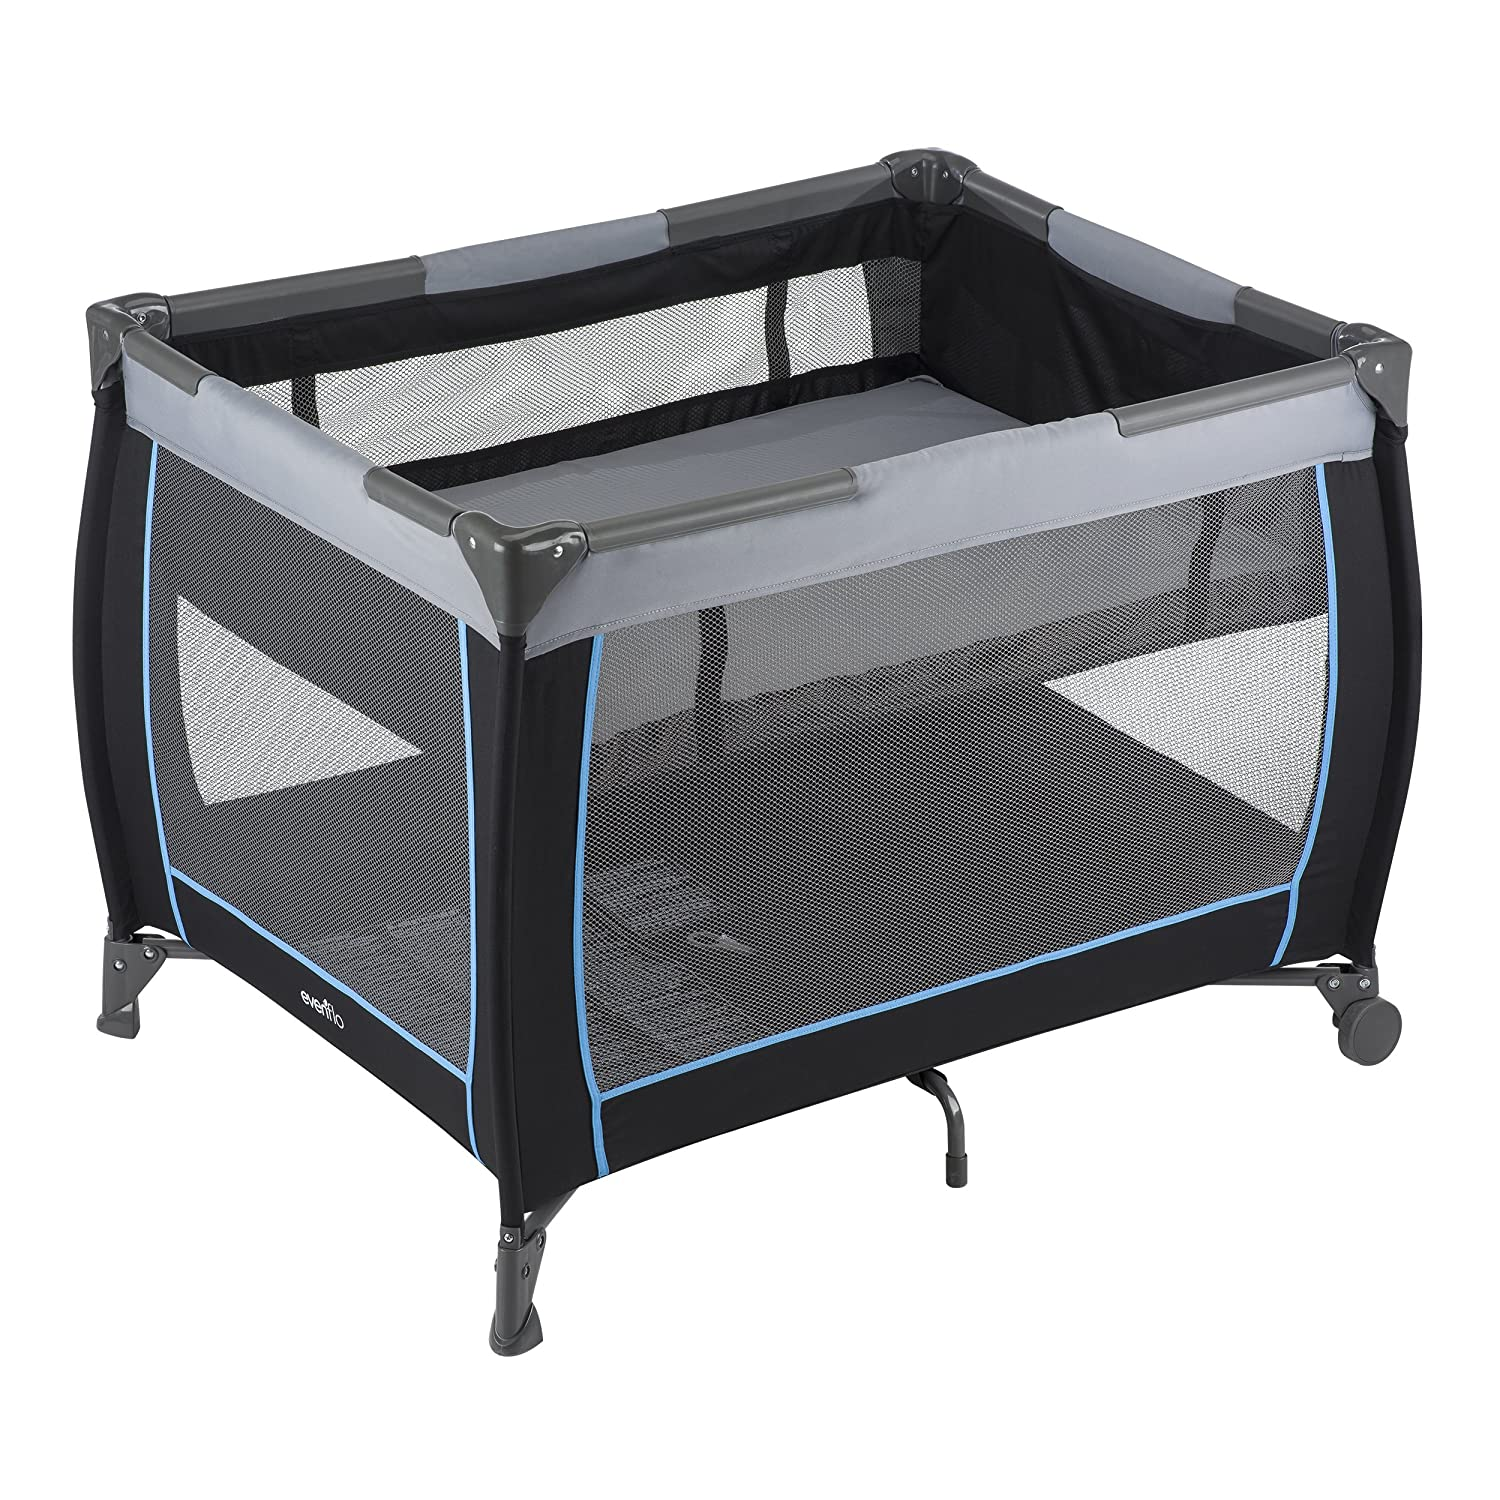 Evenflo Arden Playard, Black/Blue, One Size 70511936